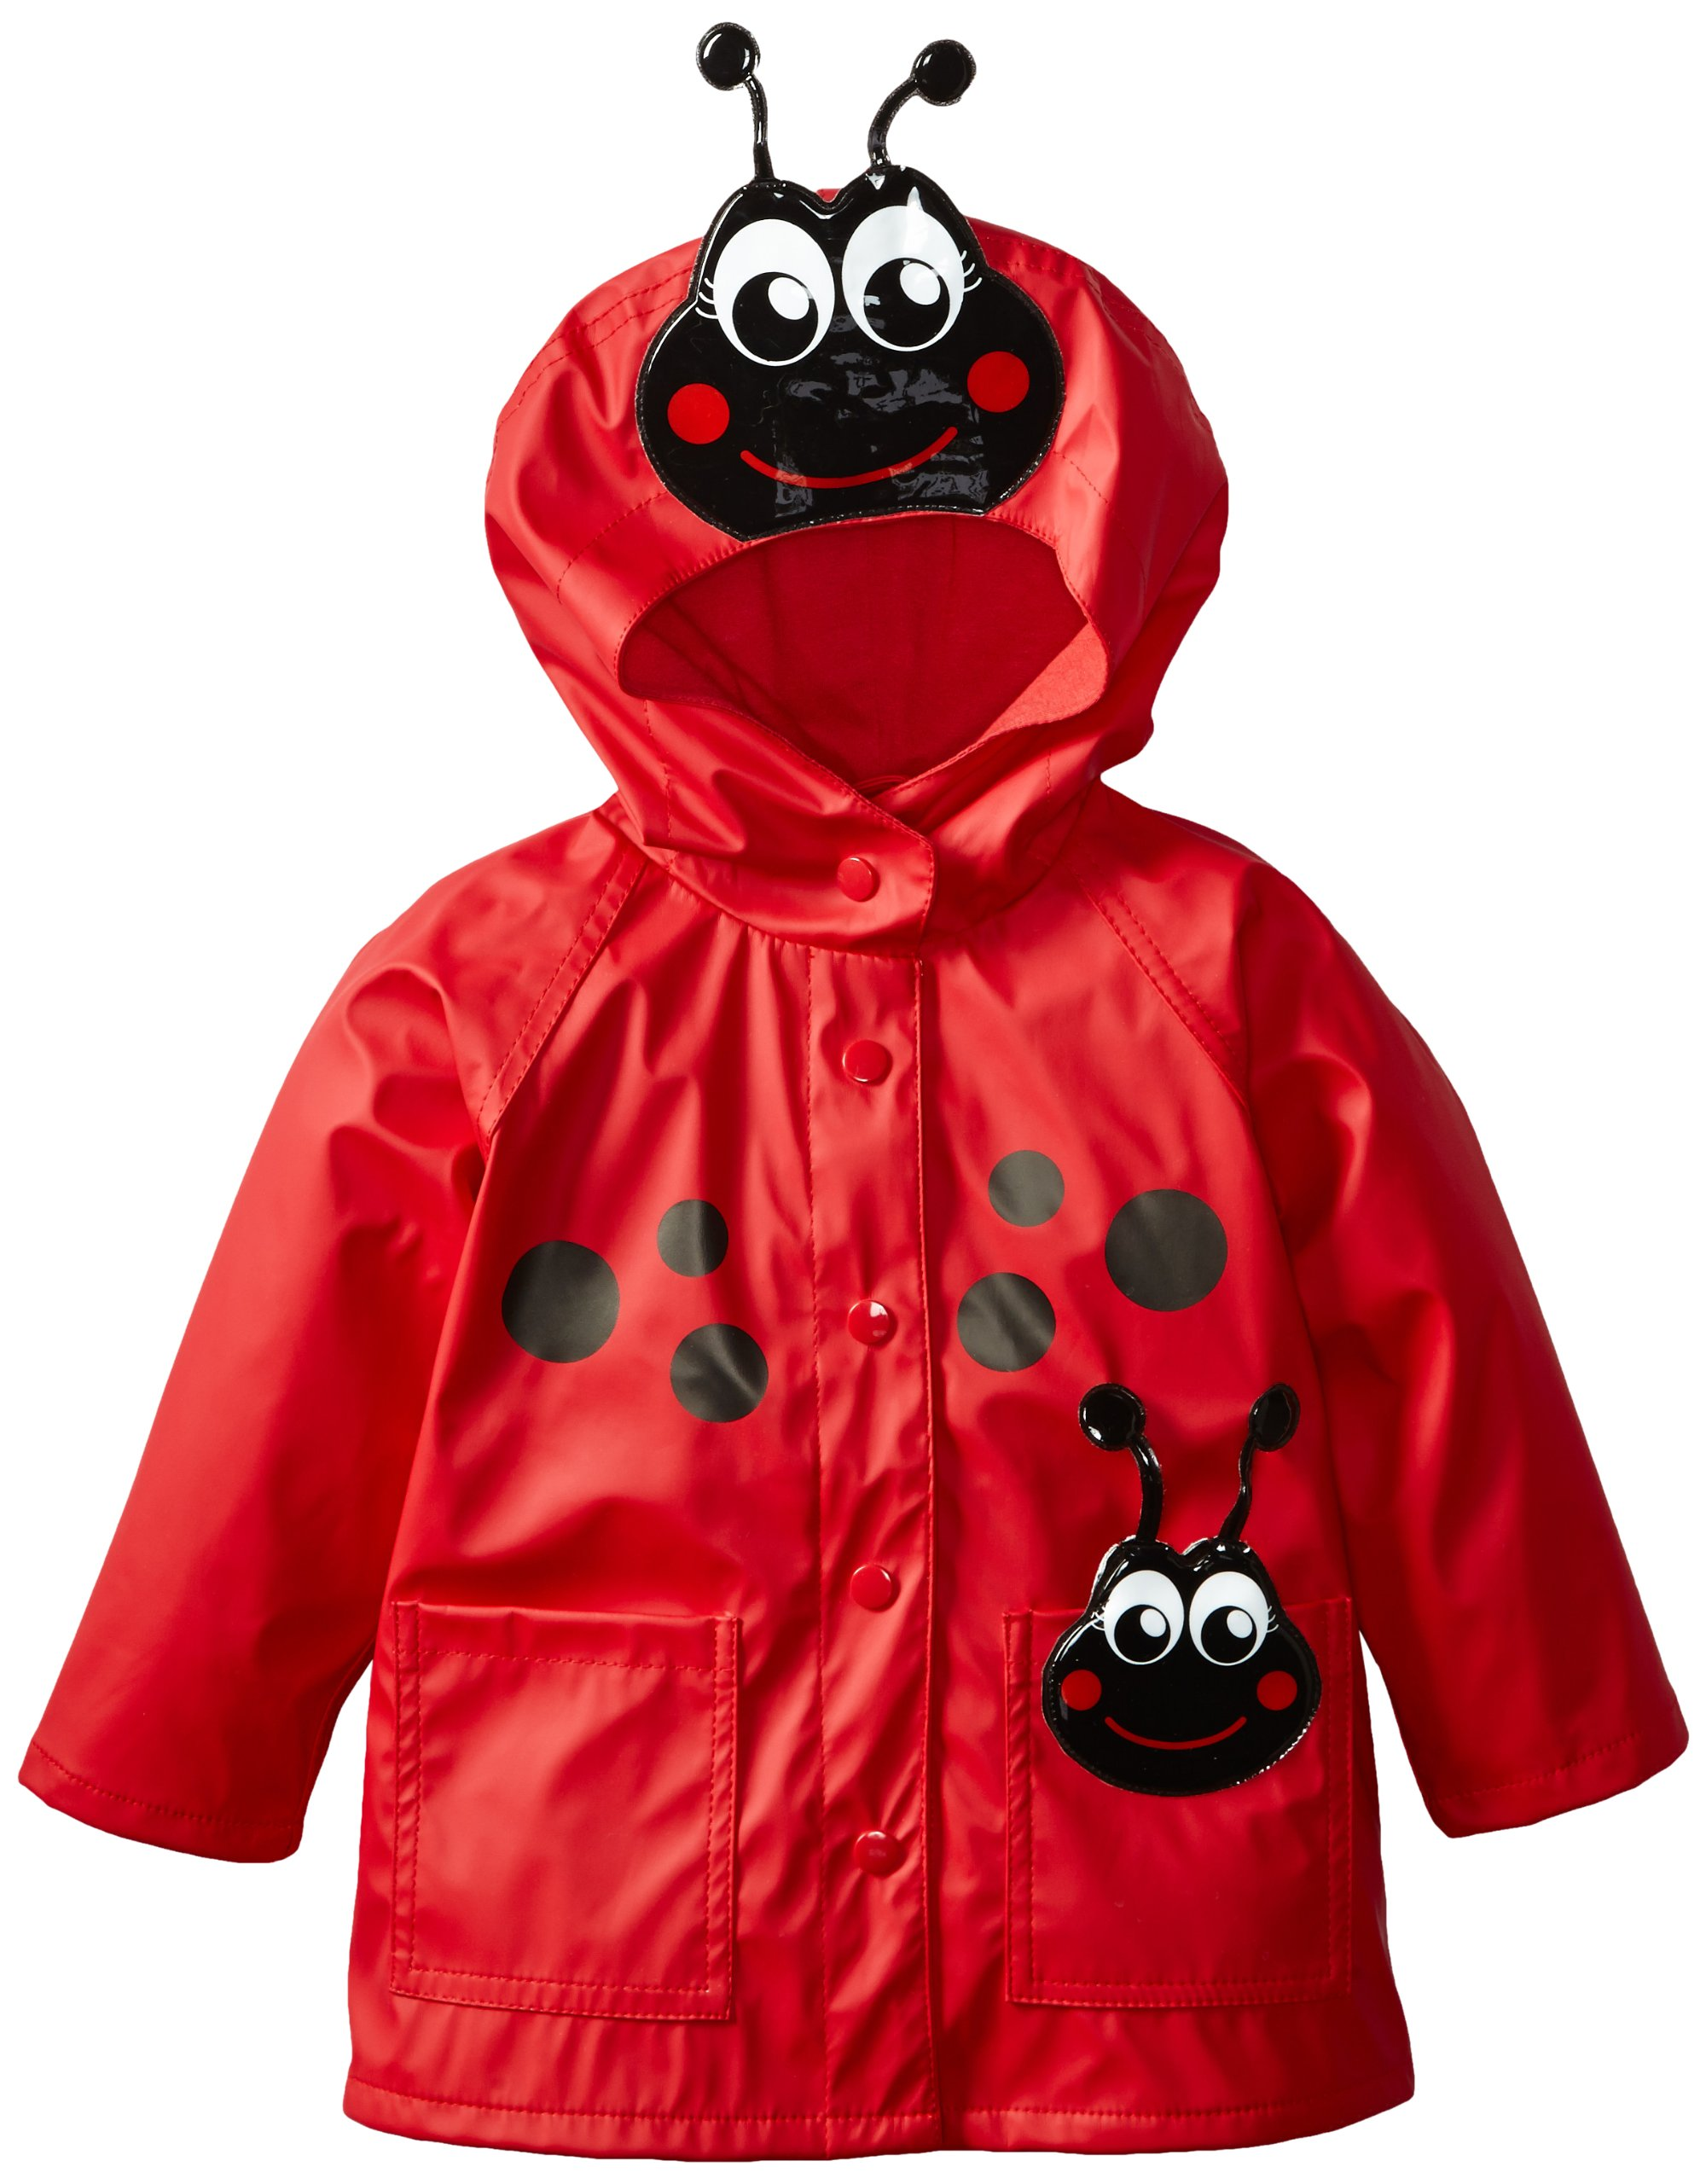 Western Chief Kids Soft Lined Character Rain Jackets, Lucy the Ladybug, 4T by Western Chief